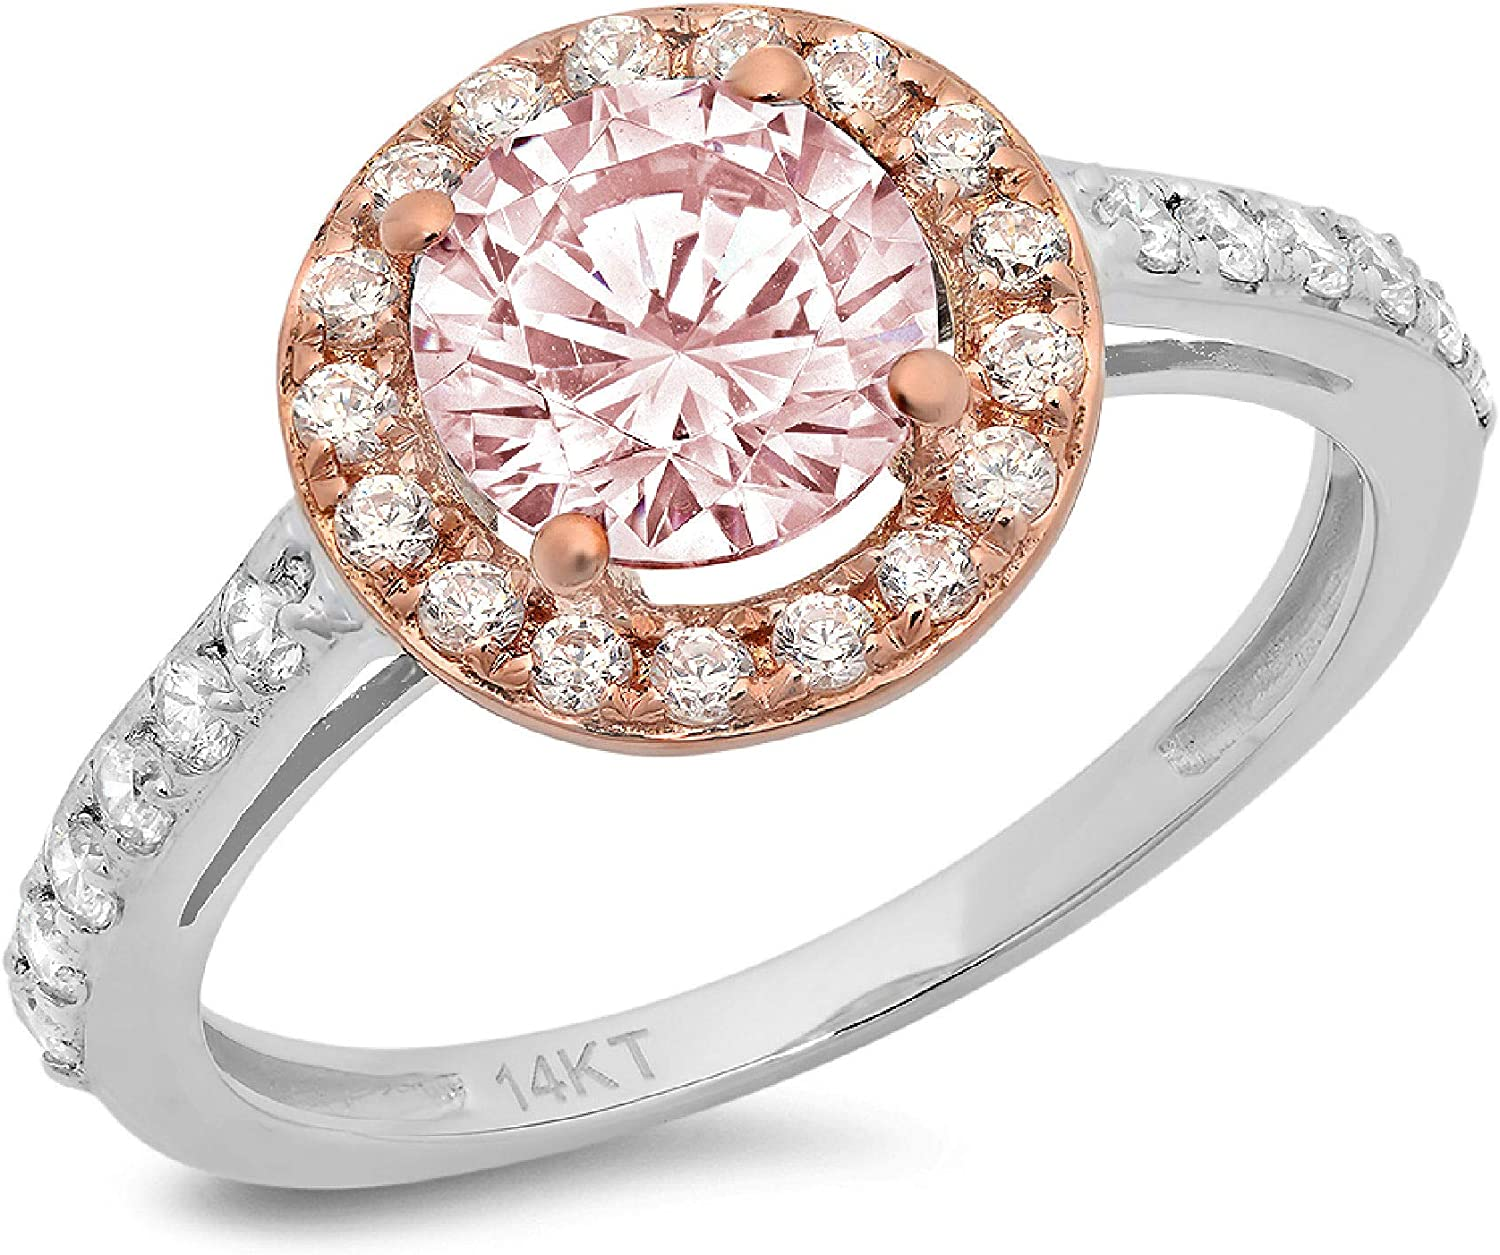 Clara Pucci 2.5 ct Round Cut Solitaire Accent Halo Stunning Genuine Flawless Pink Simulated Diamond Gem Designer Modern Statement Ring Solid 18K White & Rose Gold